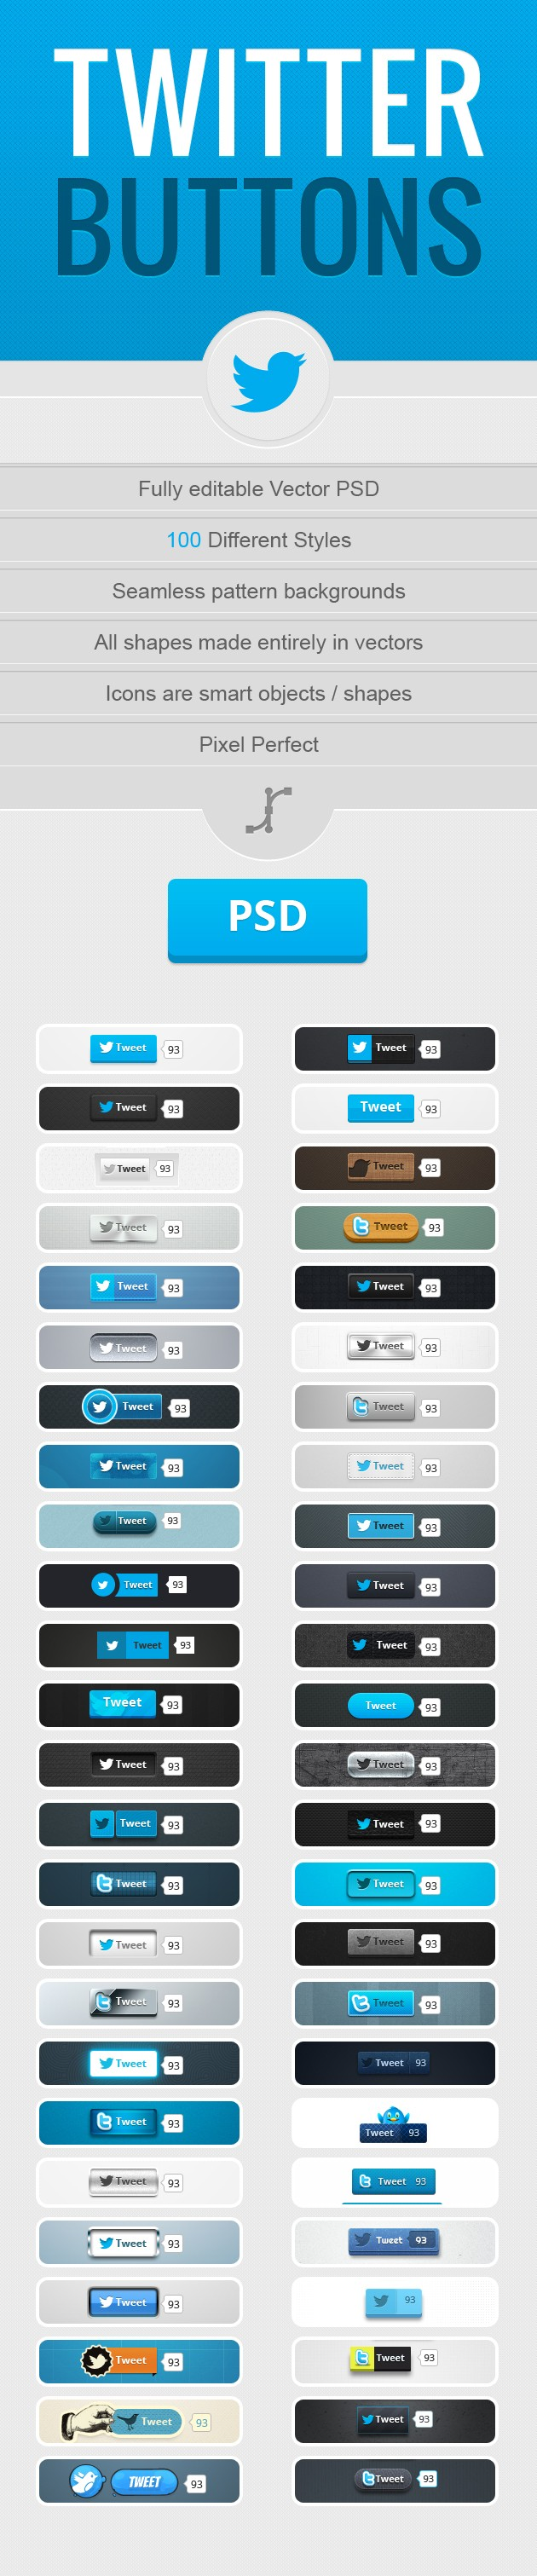 630x3022 600 Twitter Buttons Fully Editable Vector Psd Freebie